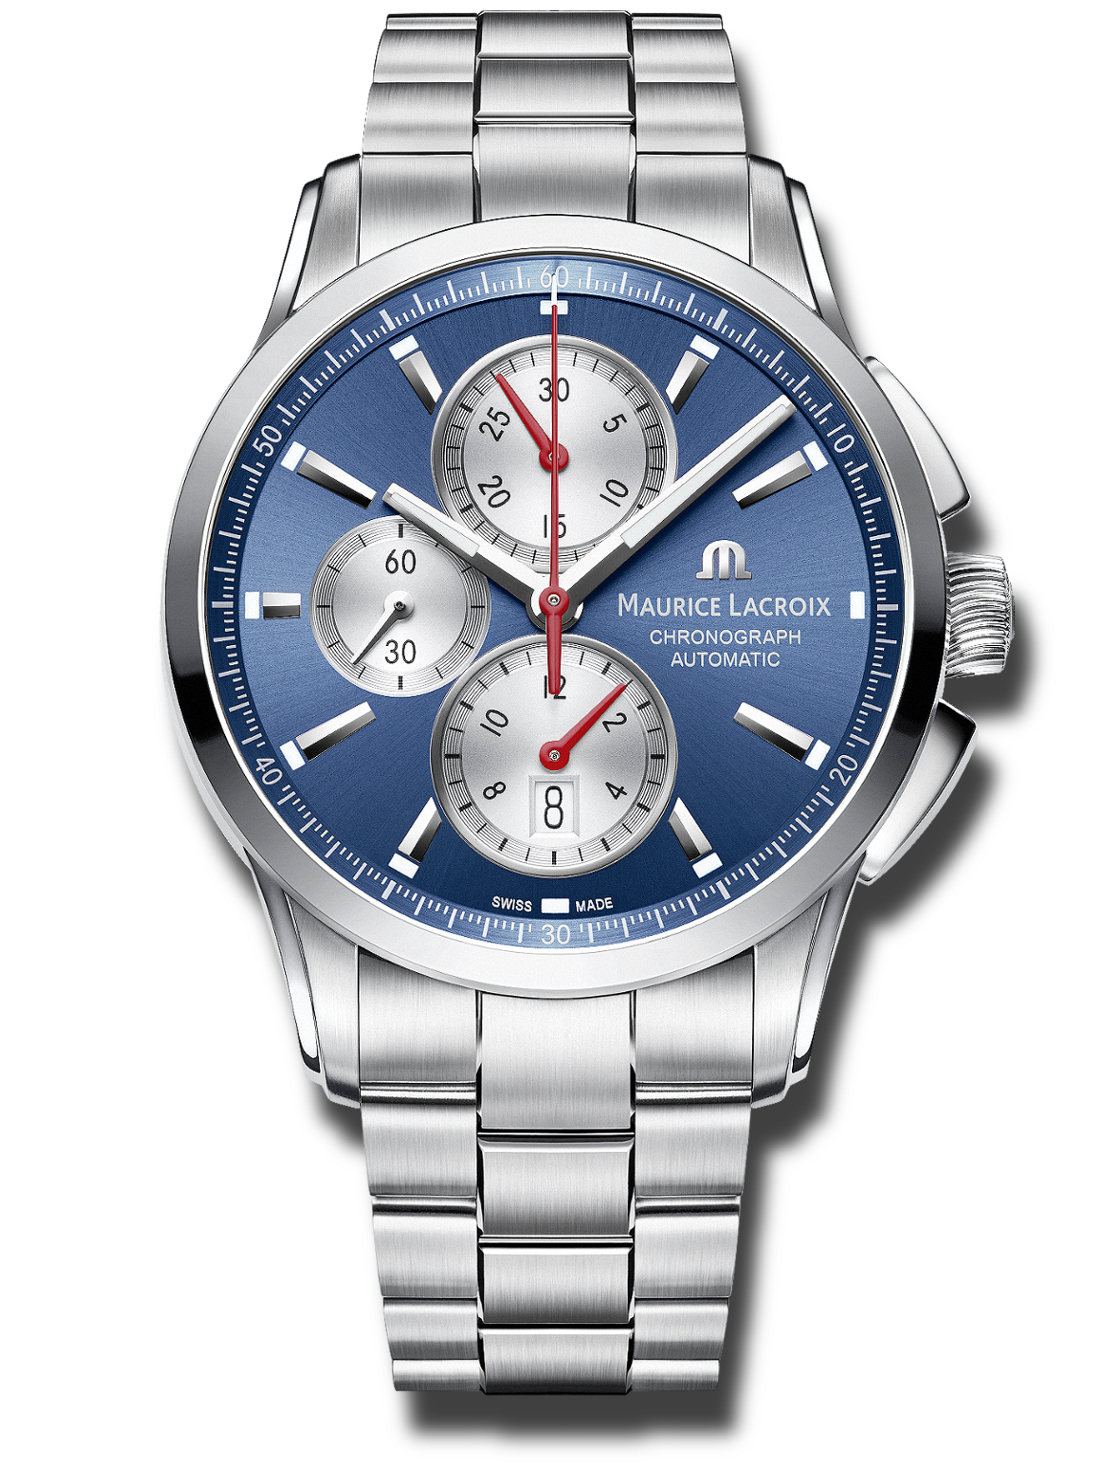 Modell Ss002 430 Lacroix Chronograph 1 Maurice Pt6388 Online Pontos W2DIY9EH